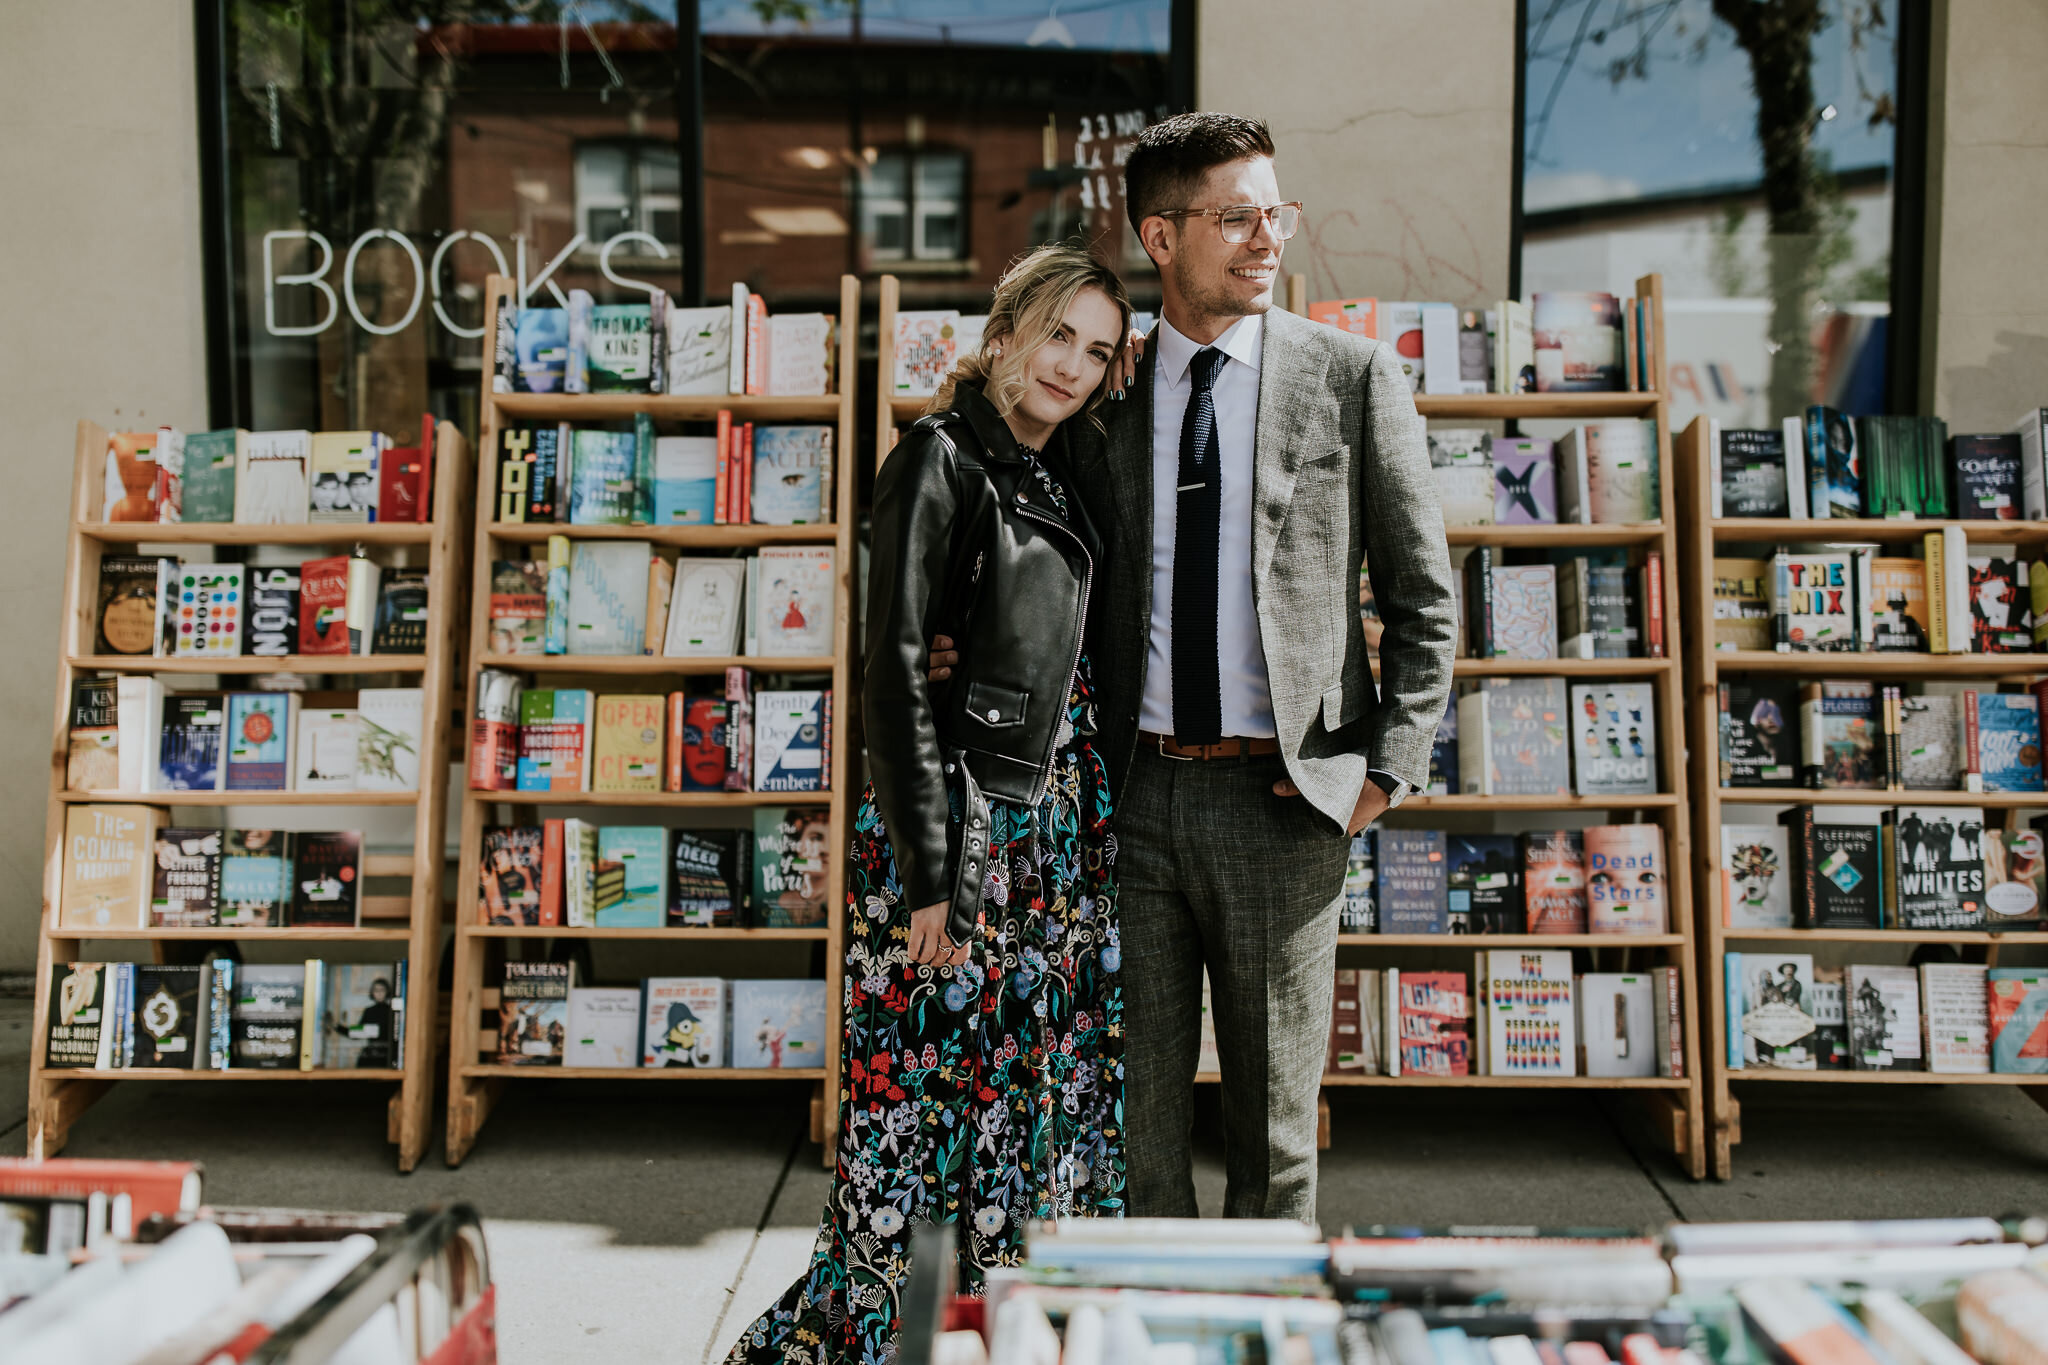 Edgy bride and groom in front of Kensington bookstore for quirky wedding photos